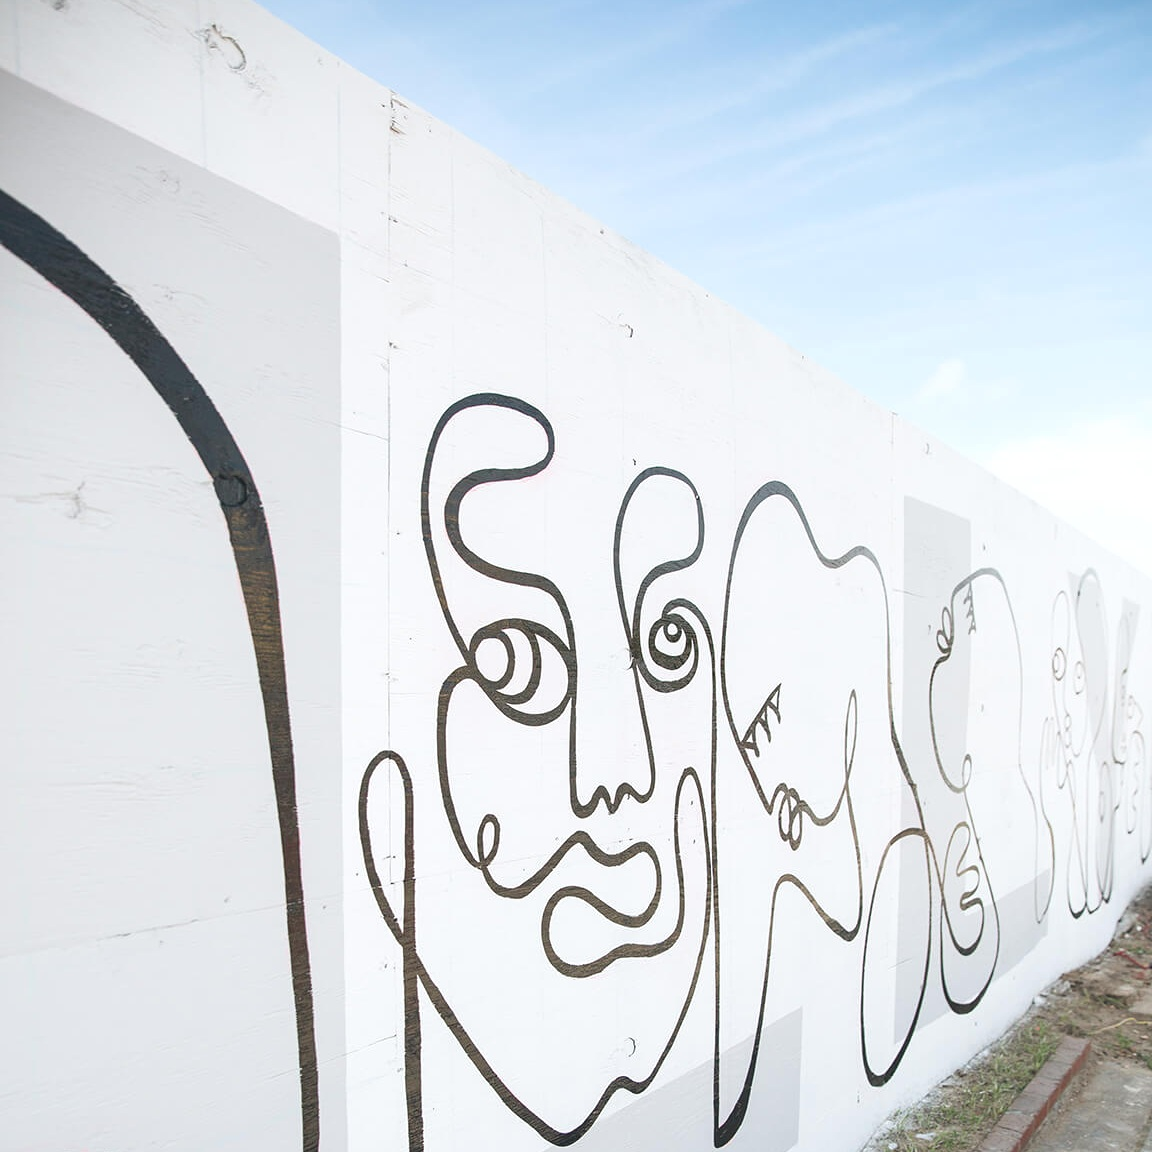 outline-at-noho-mural-1.jpg